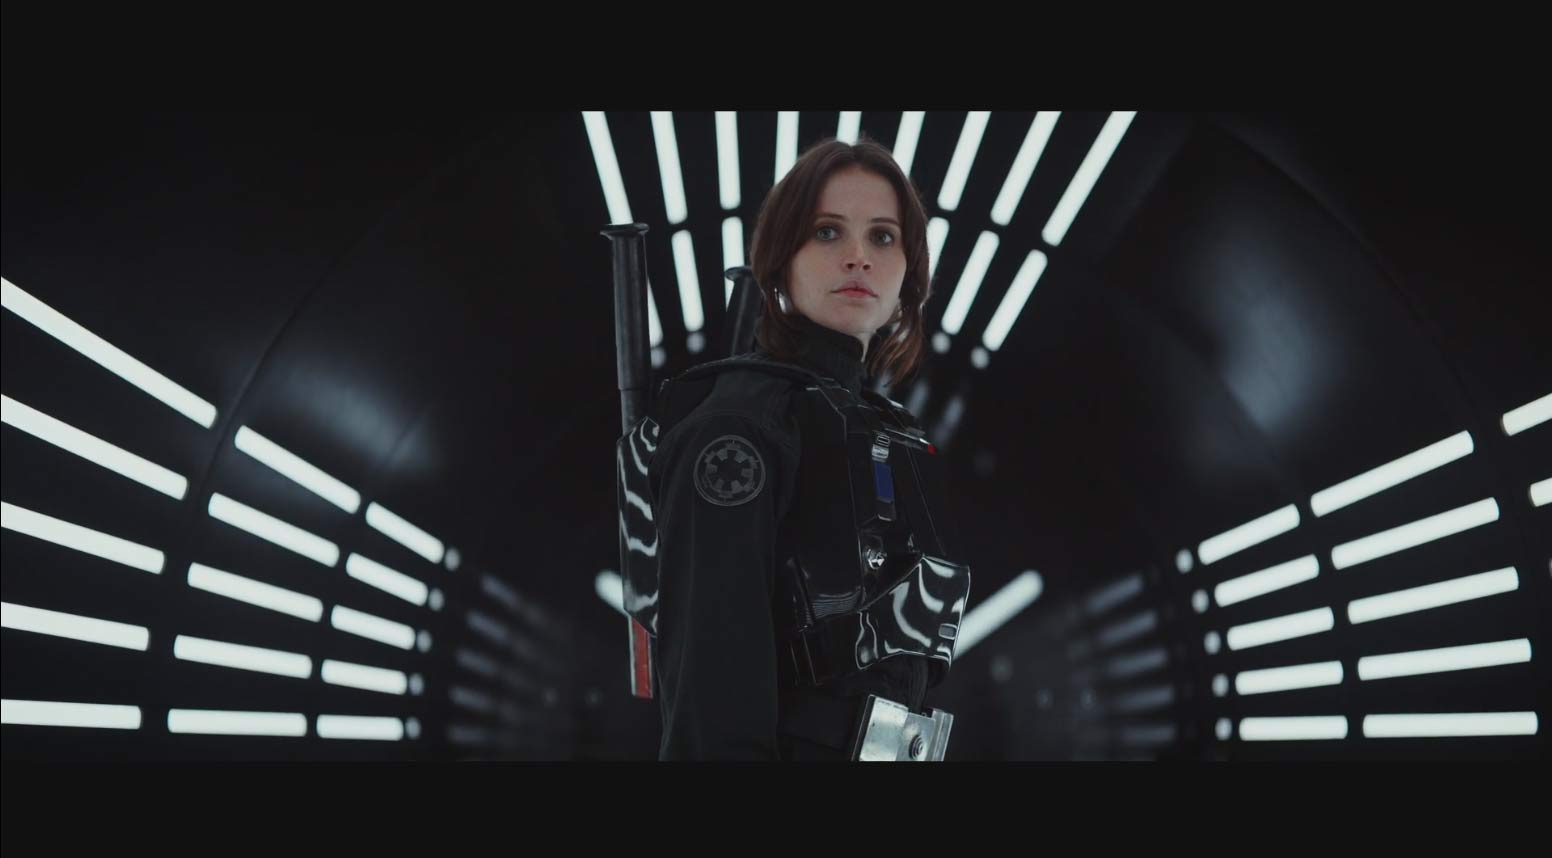 Star Wars: Rogue One Teaser Trailer Screencap 1